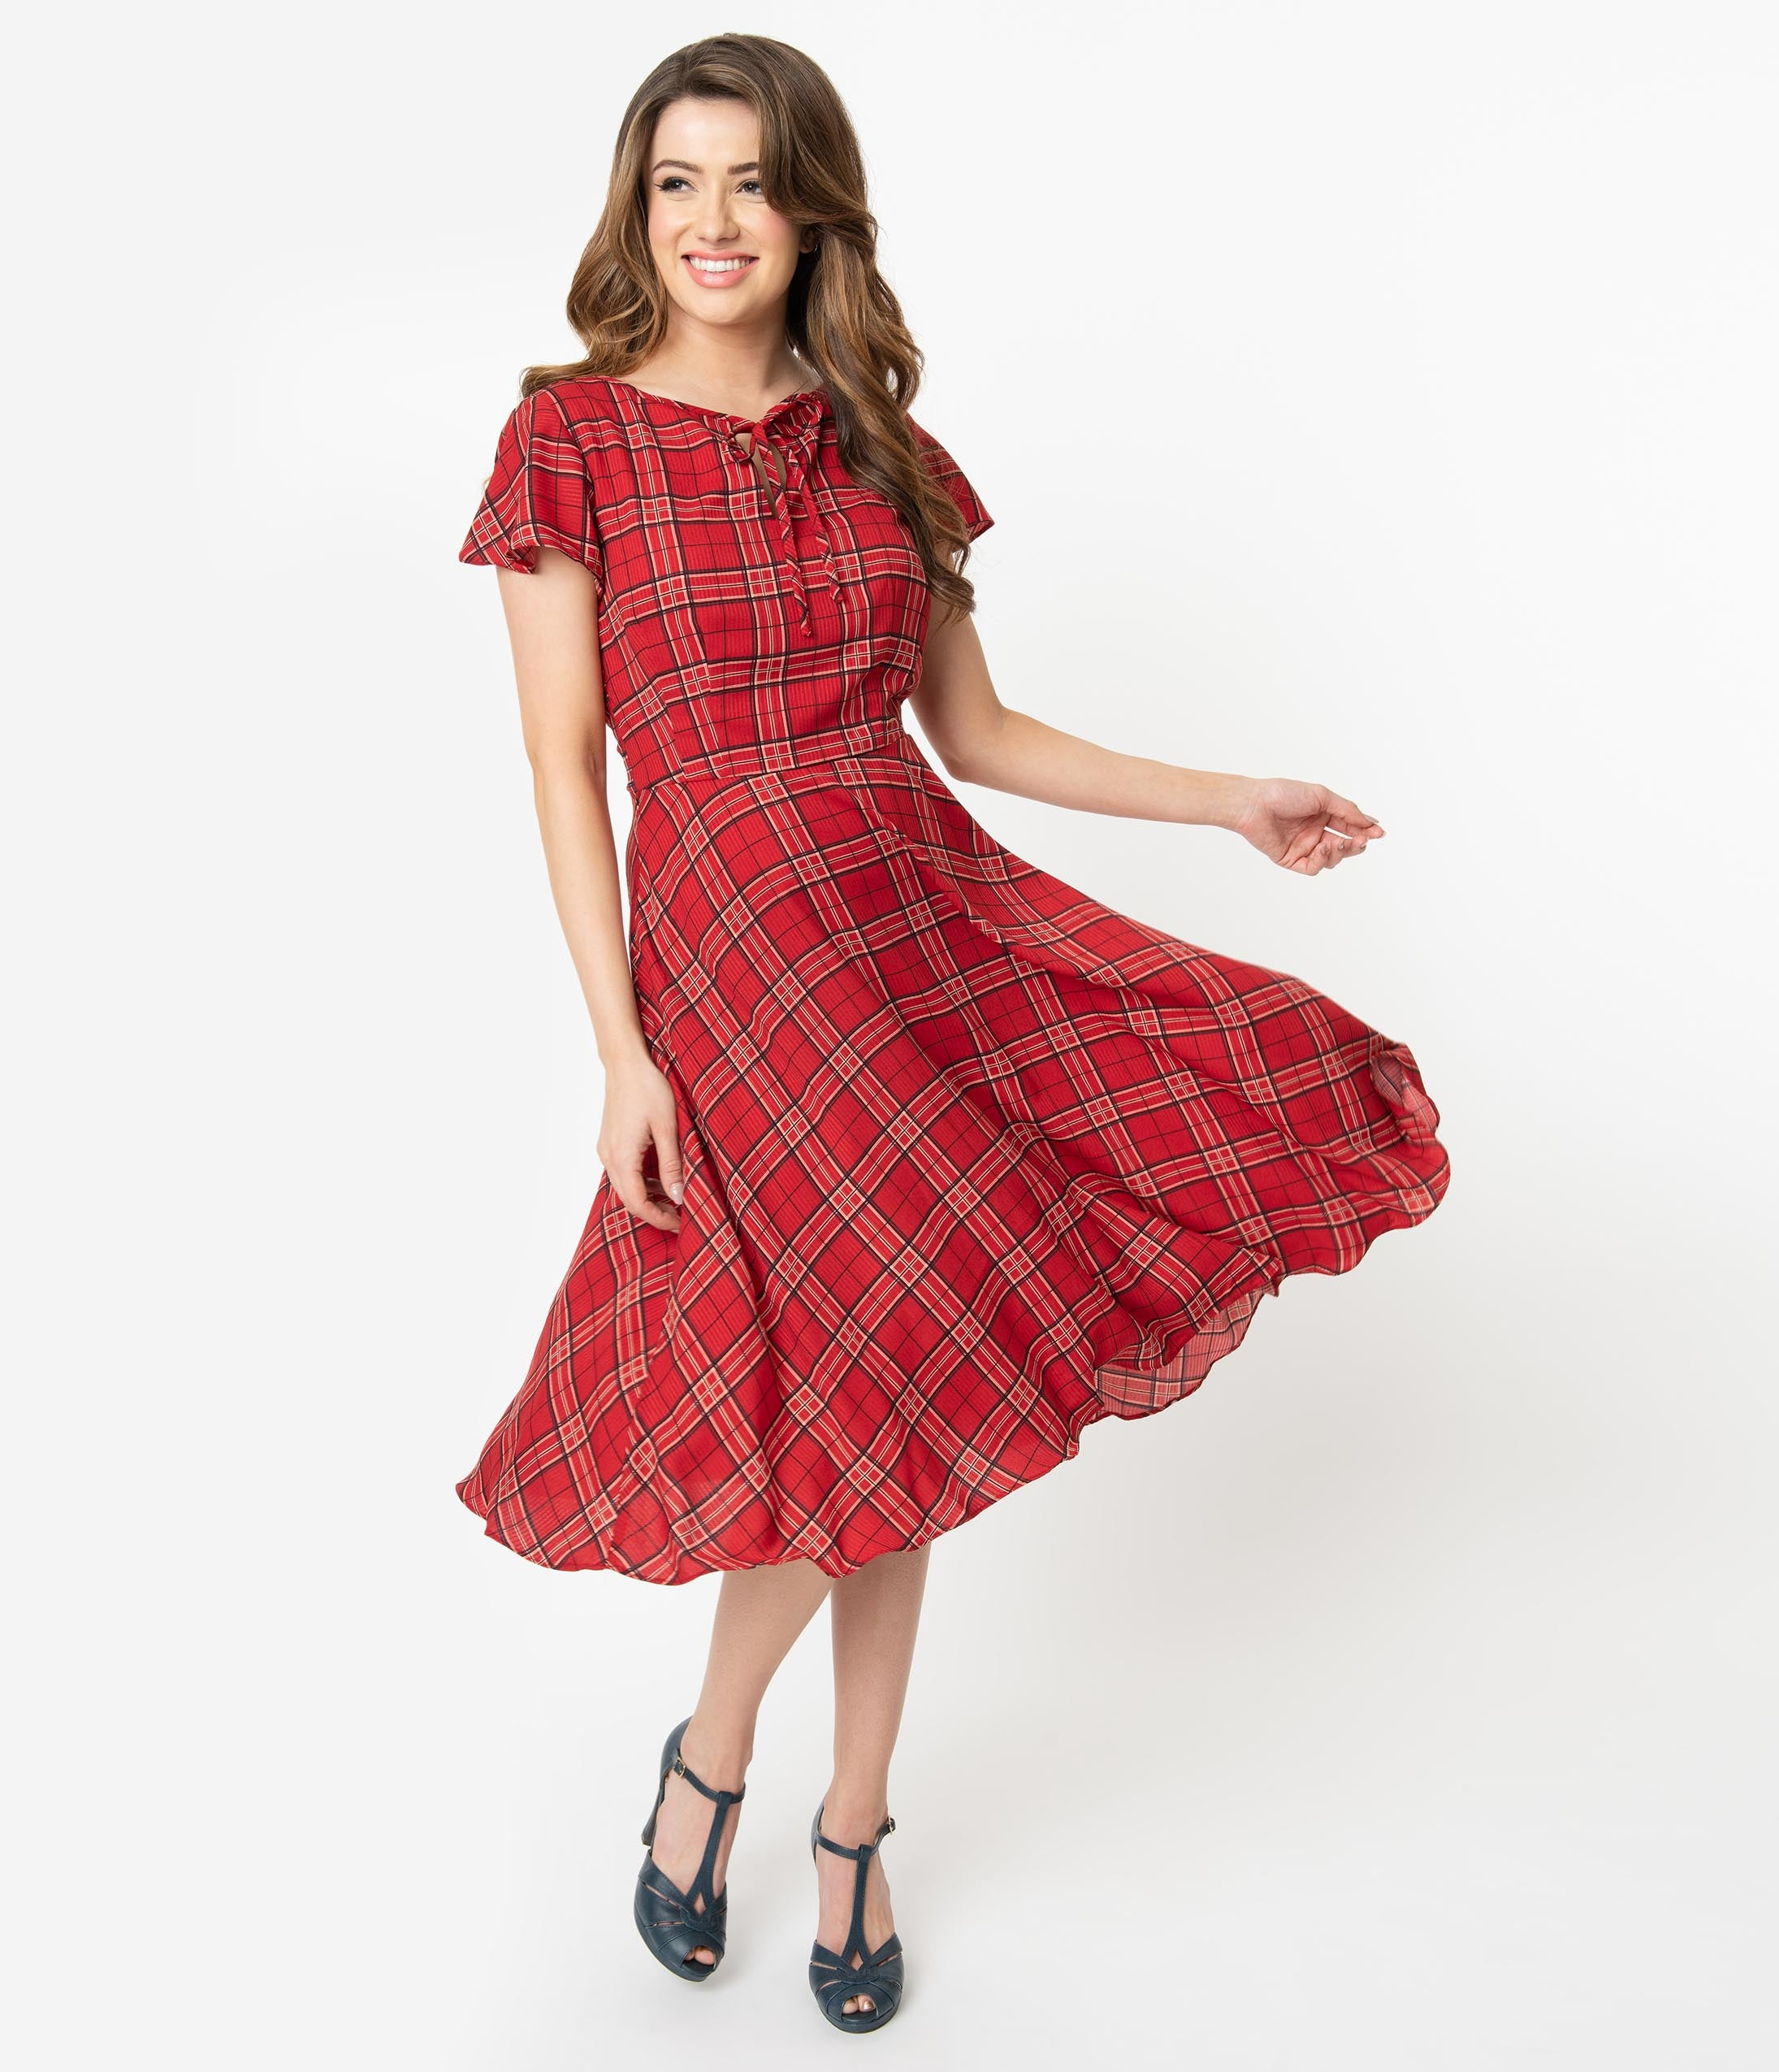 Swing Dance Clothing You Can Dance In Unique Vintage 1940S Style Red Plaid Formosa Swing Dress $88.00 AT vintagedancer.com